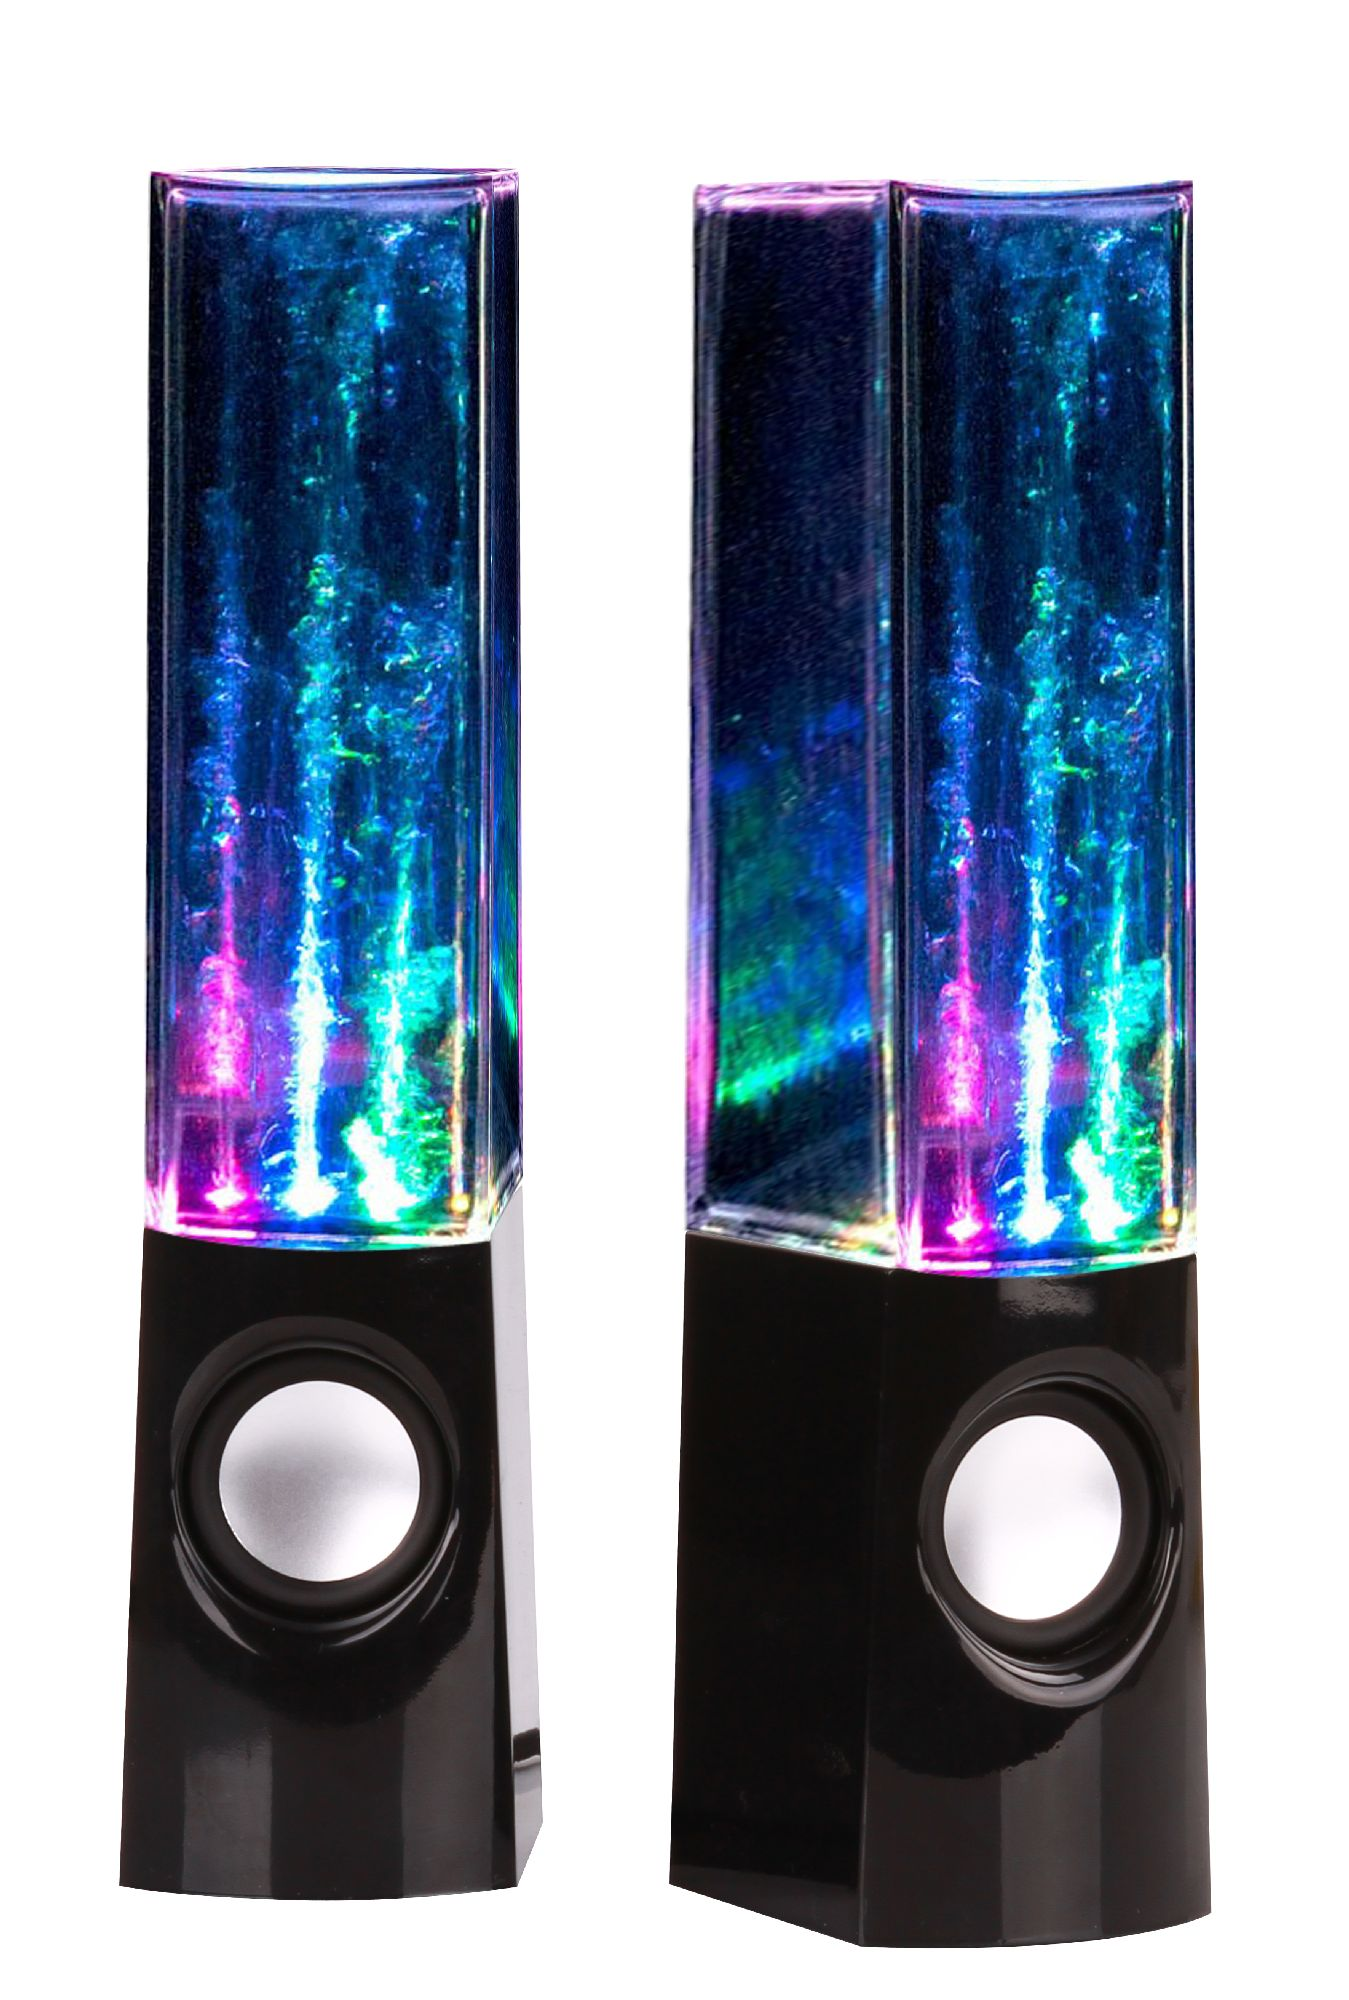 Bolan Plug & Play Multi-Color Illuminated Dancing Water Speaker Light Show Water Fountain Speakers LED Speakers 3.5mm Audio Plug, 4 Color LED Lights, Portable Speakers